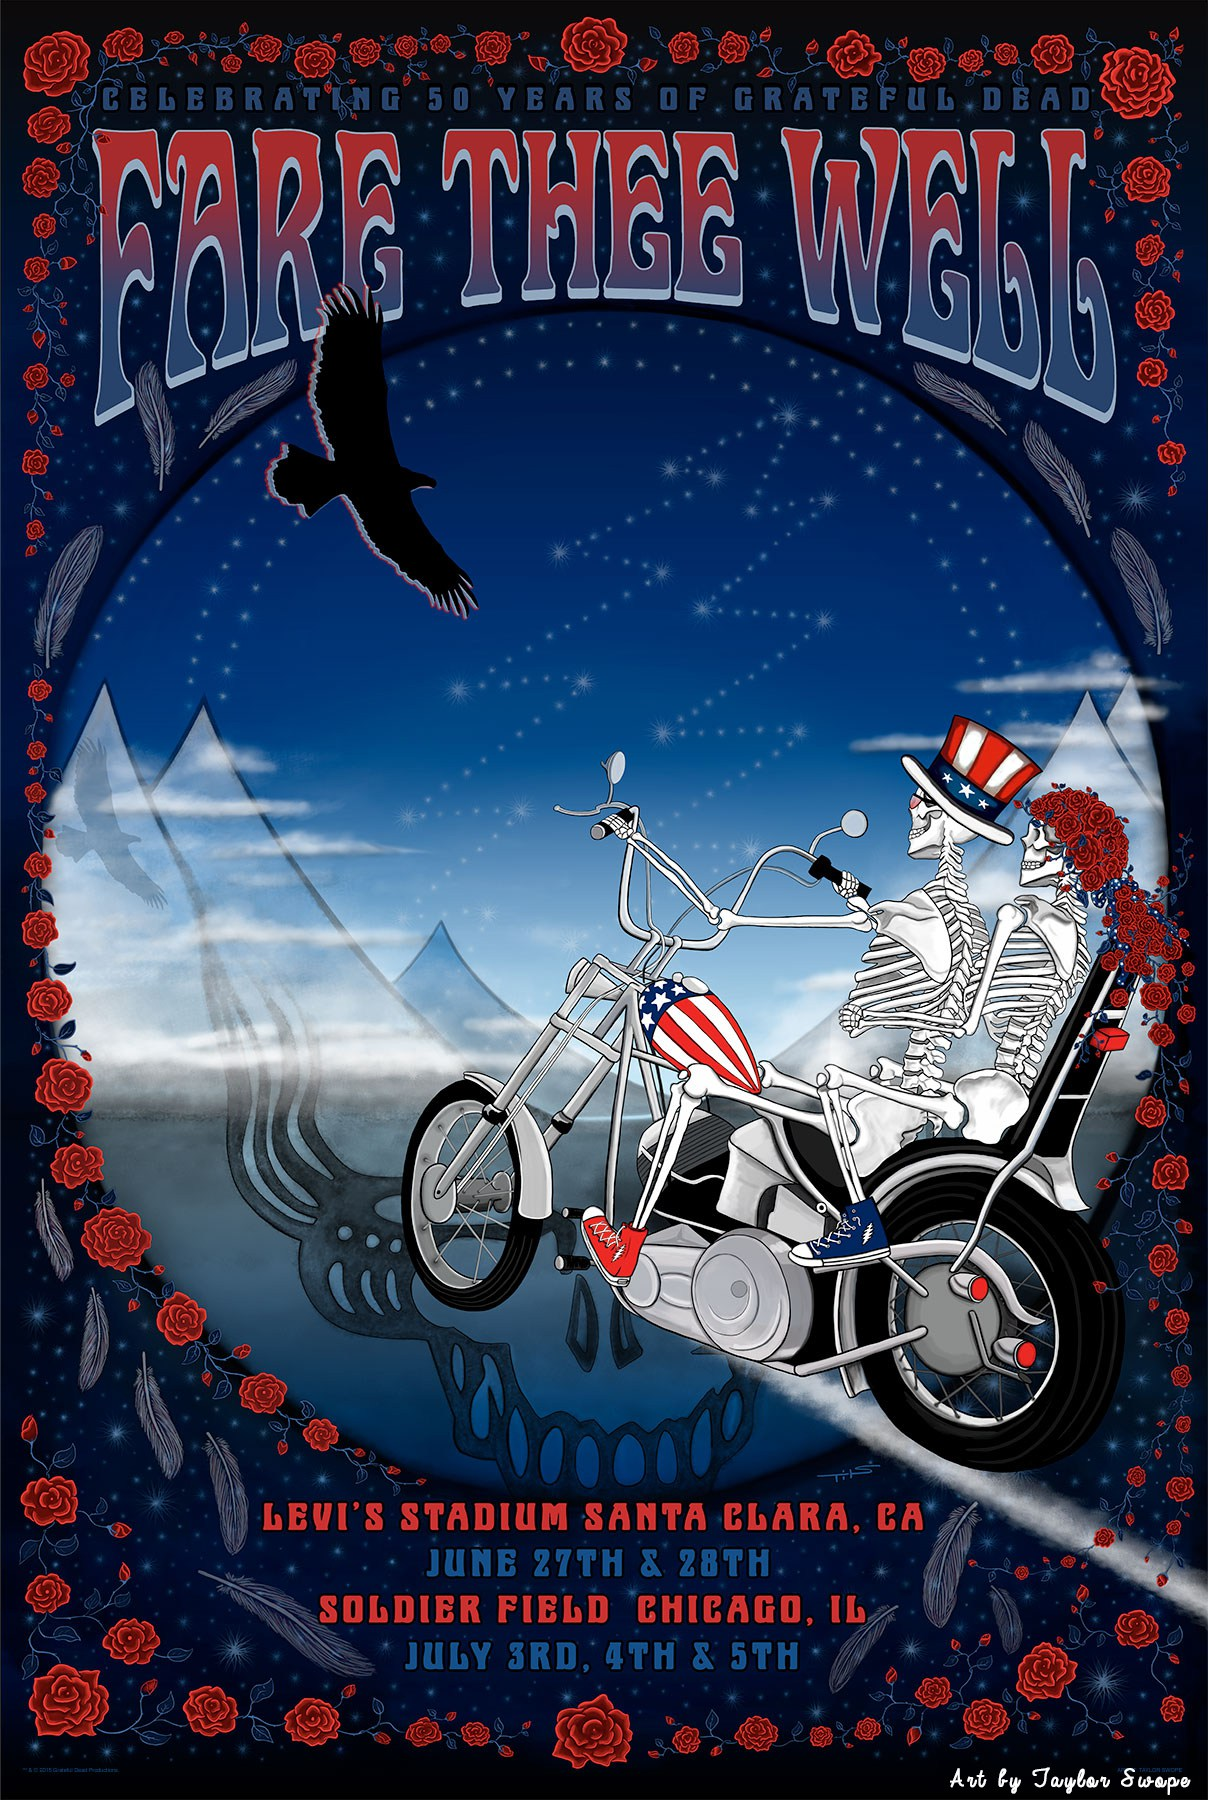 Taylor Swope's Official Fare Thee Well Poster